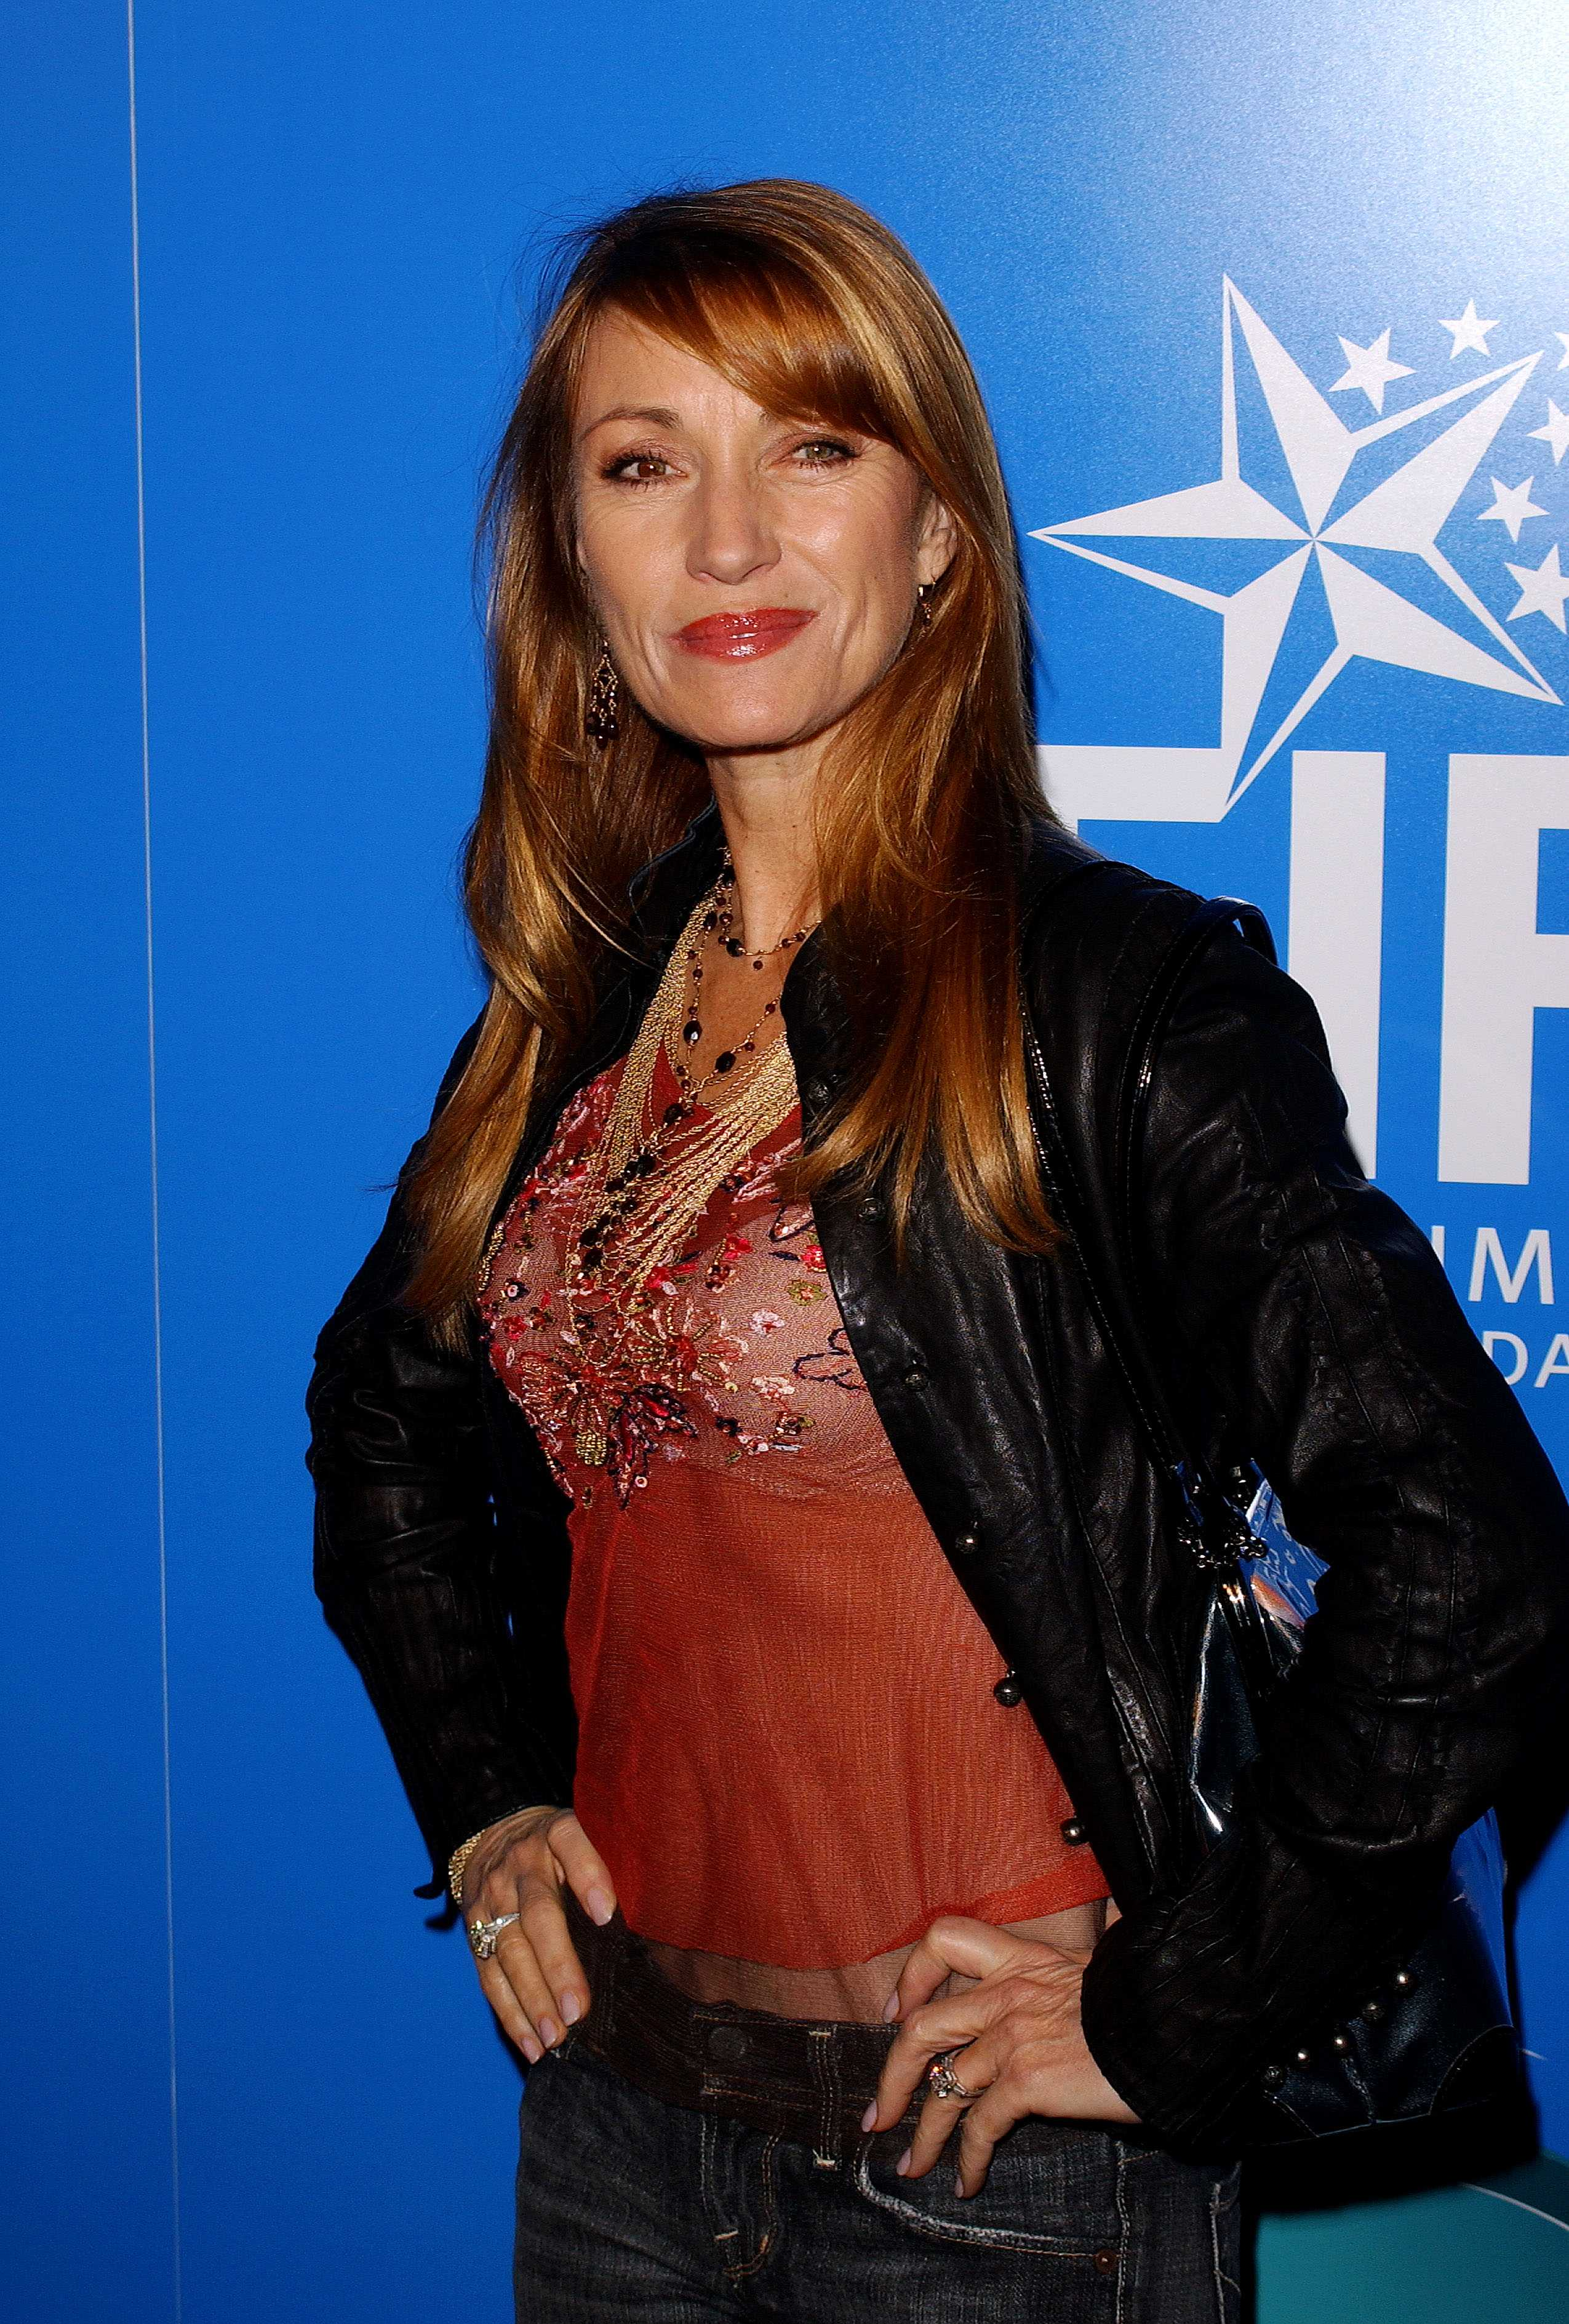 Jane Seymour Images Grammy Jam Hd Wallpaper And Background